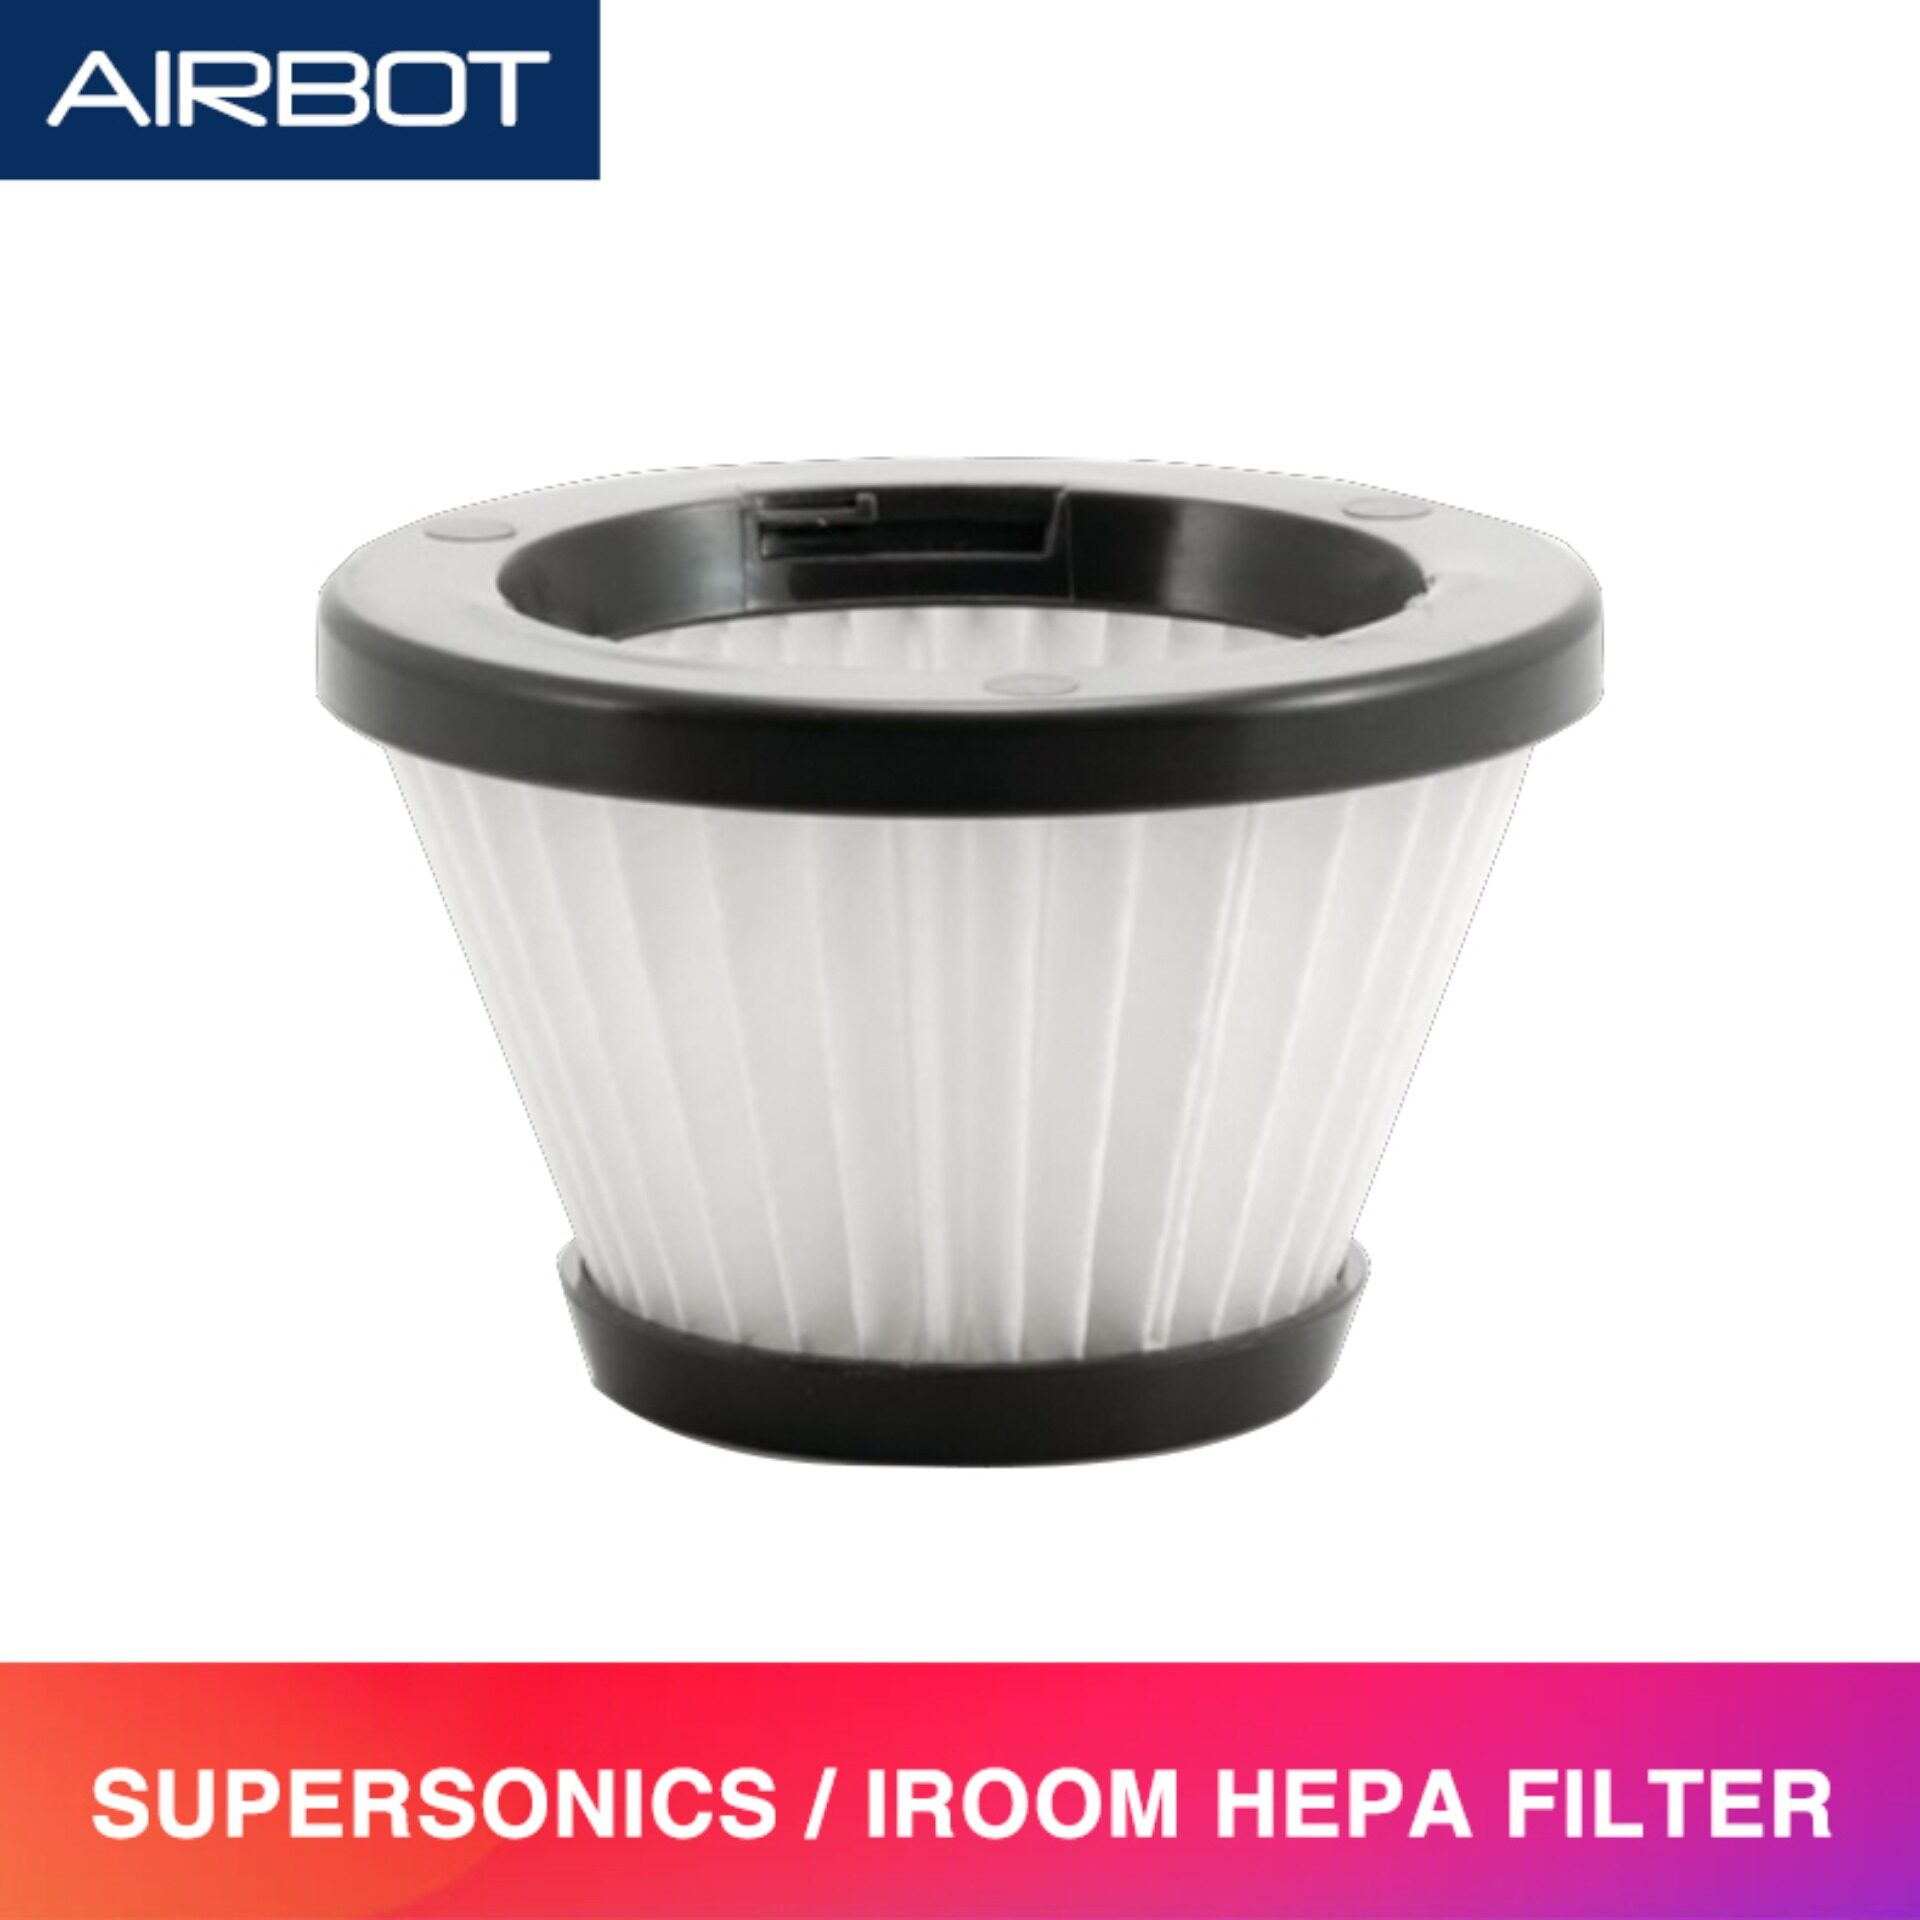 [ Accessories ] Airbot Spare Parts Replacement HEPA Filter Compatible with Supersonics and iRoom